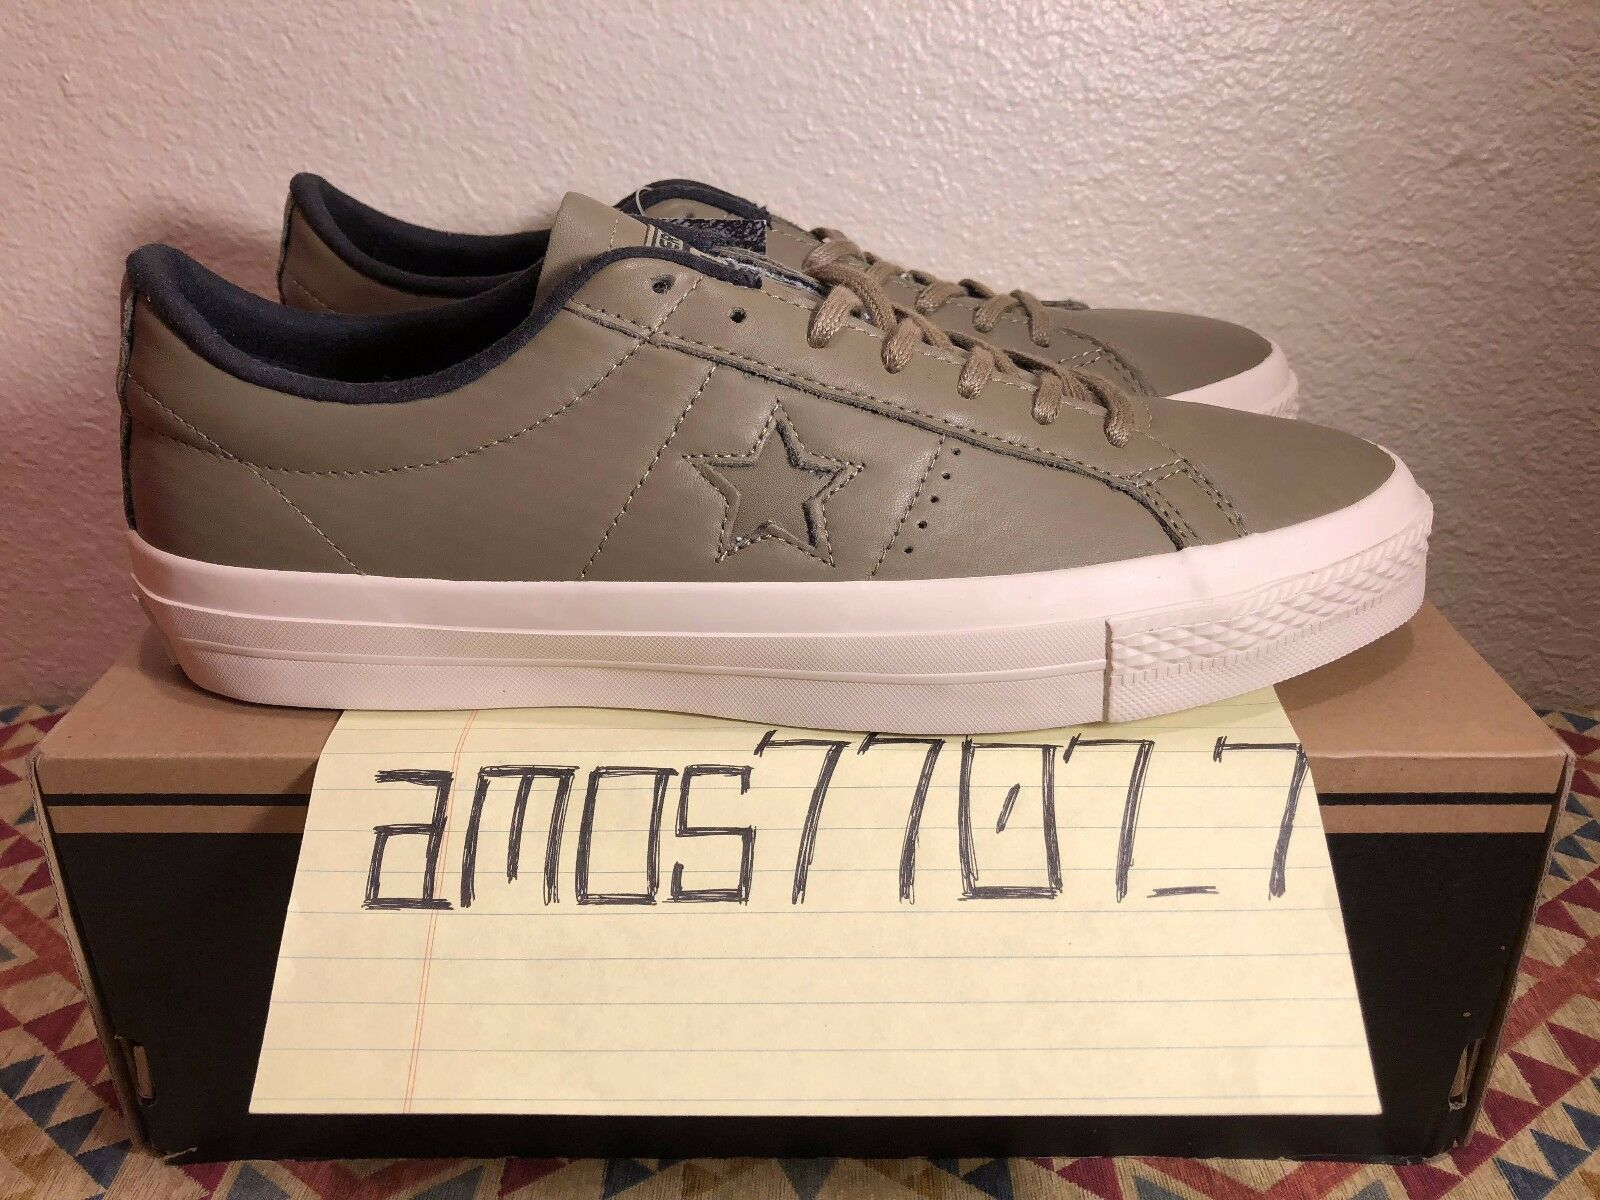 CONS Converse One Star Leather 153707C OX Green Sail White 153707C Leather Men's Size SZ 9 10 e3ed7f